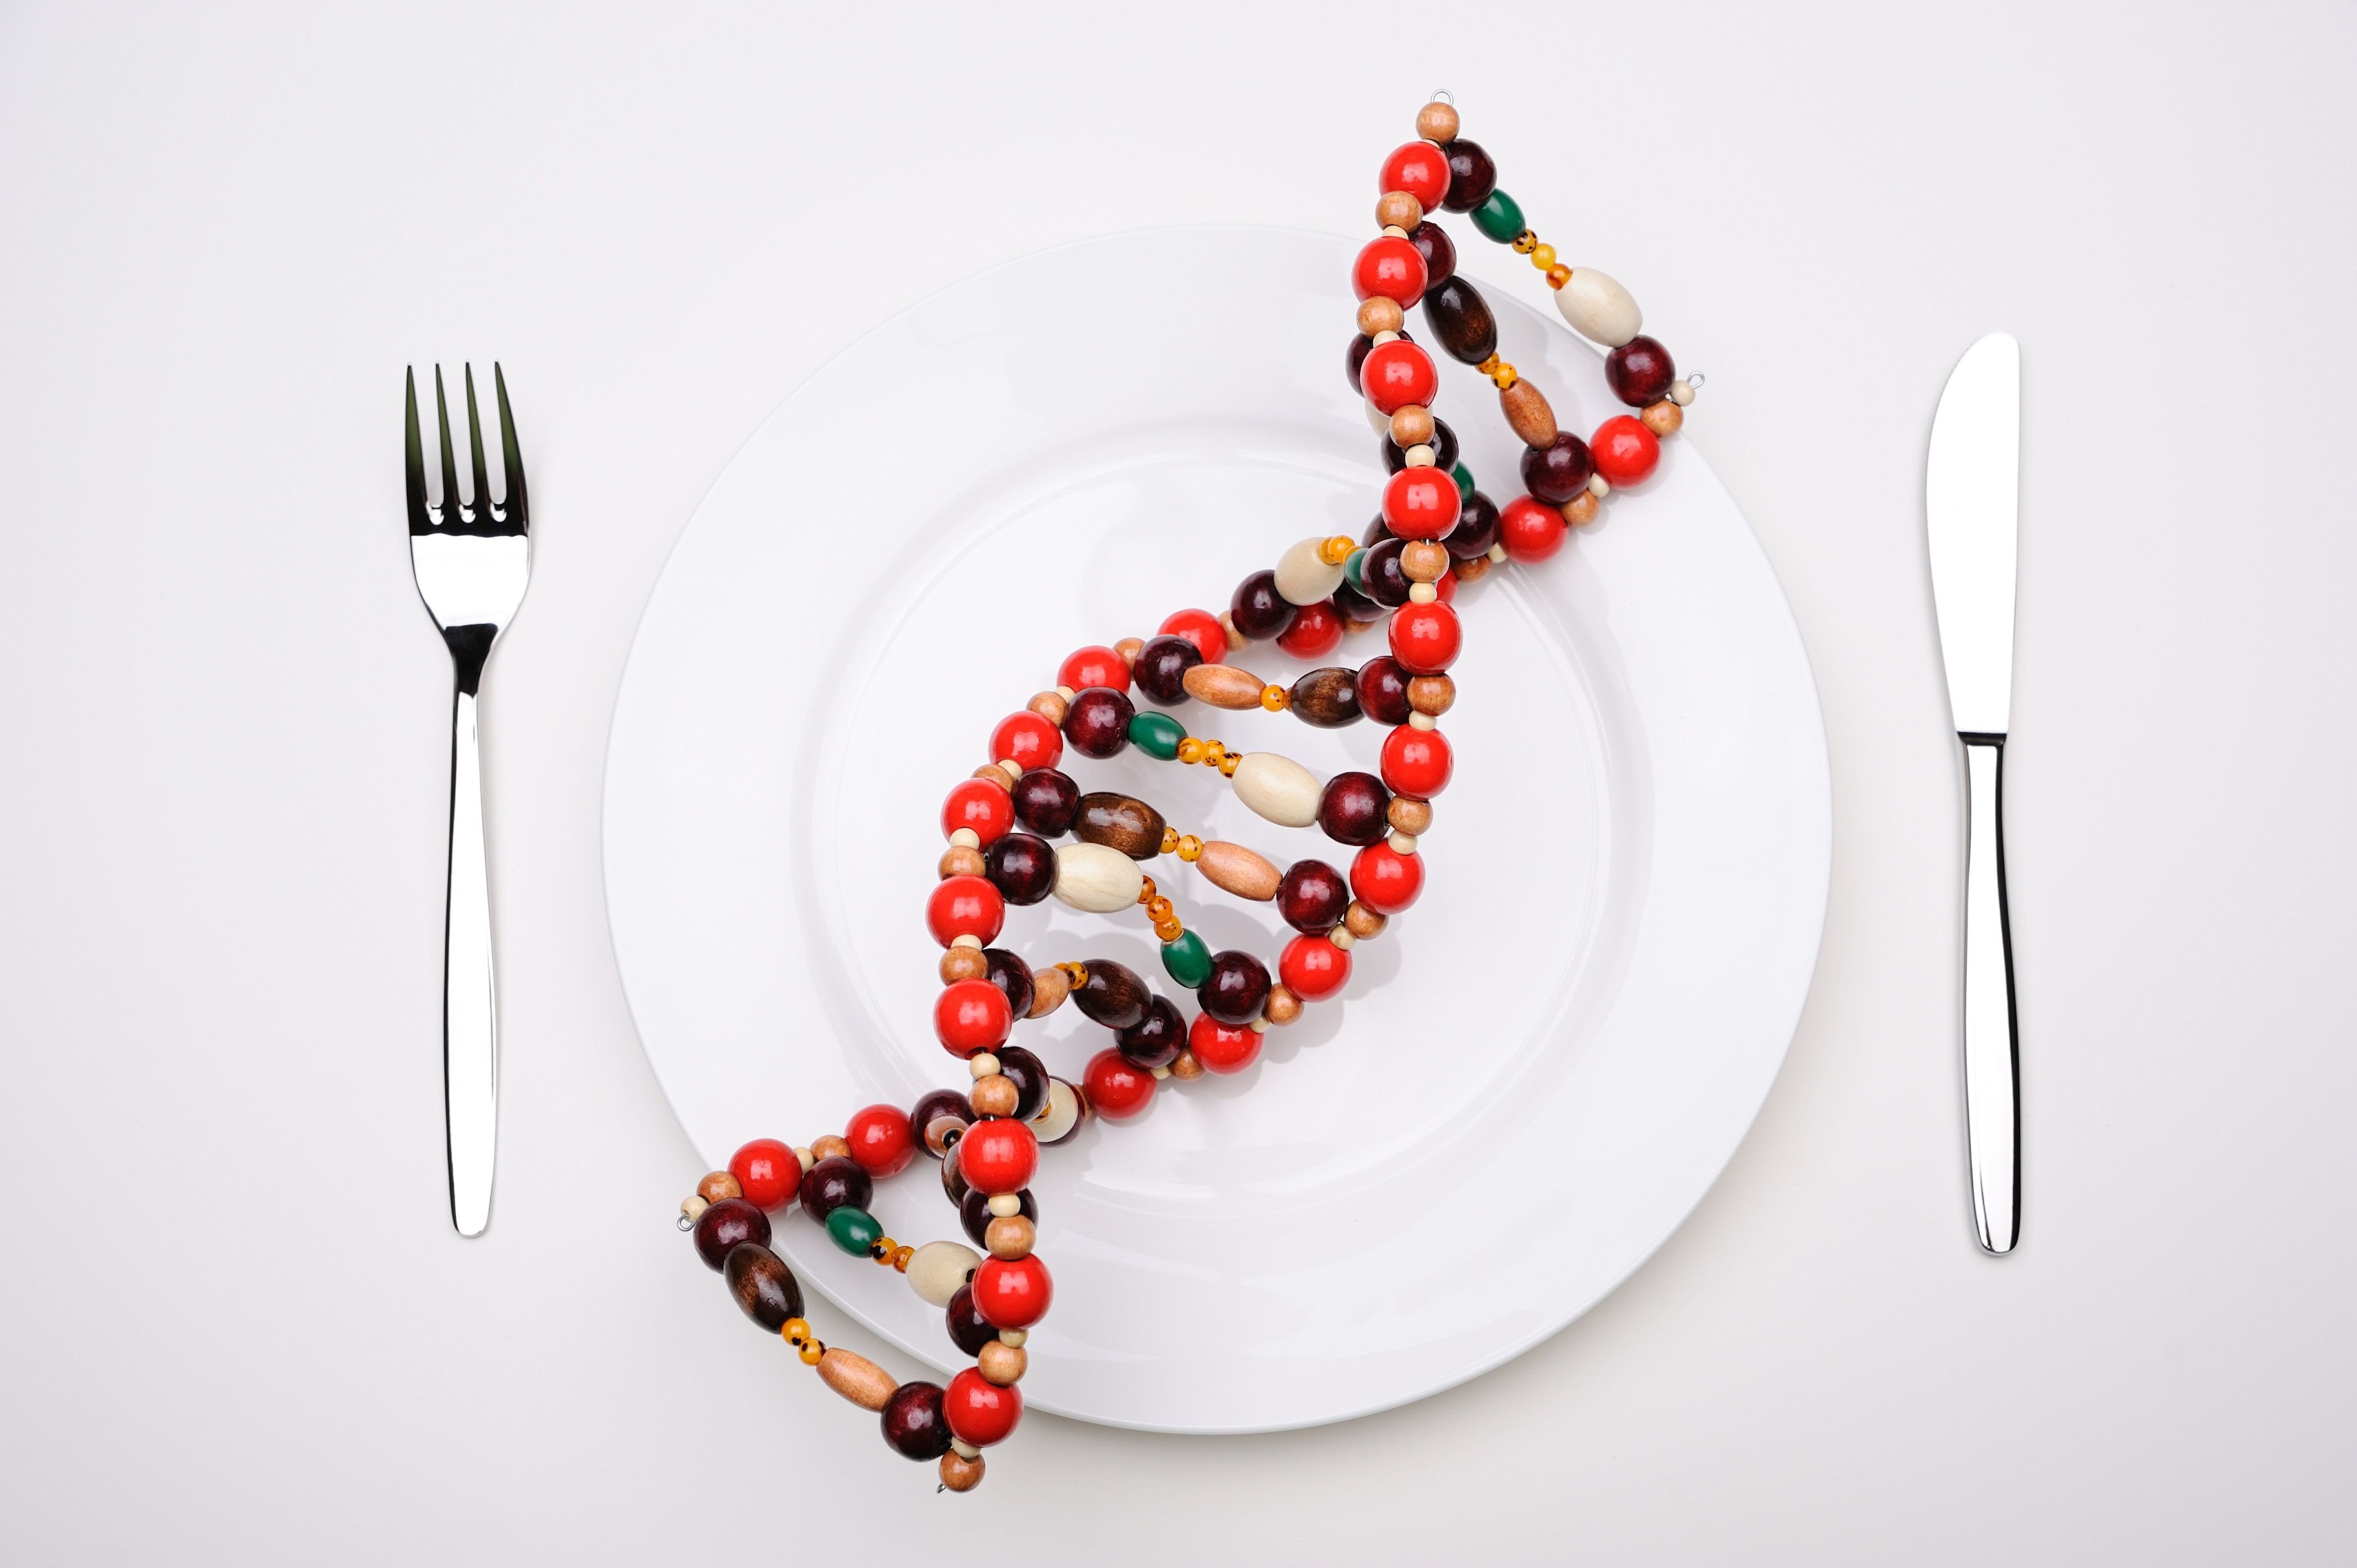 A growing body of research suggests thatgenetics play a role in our taste preferences.